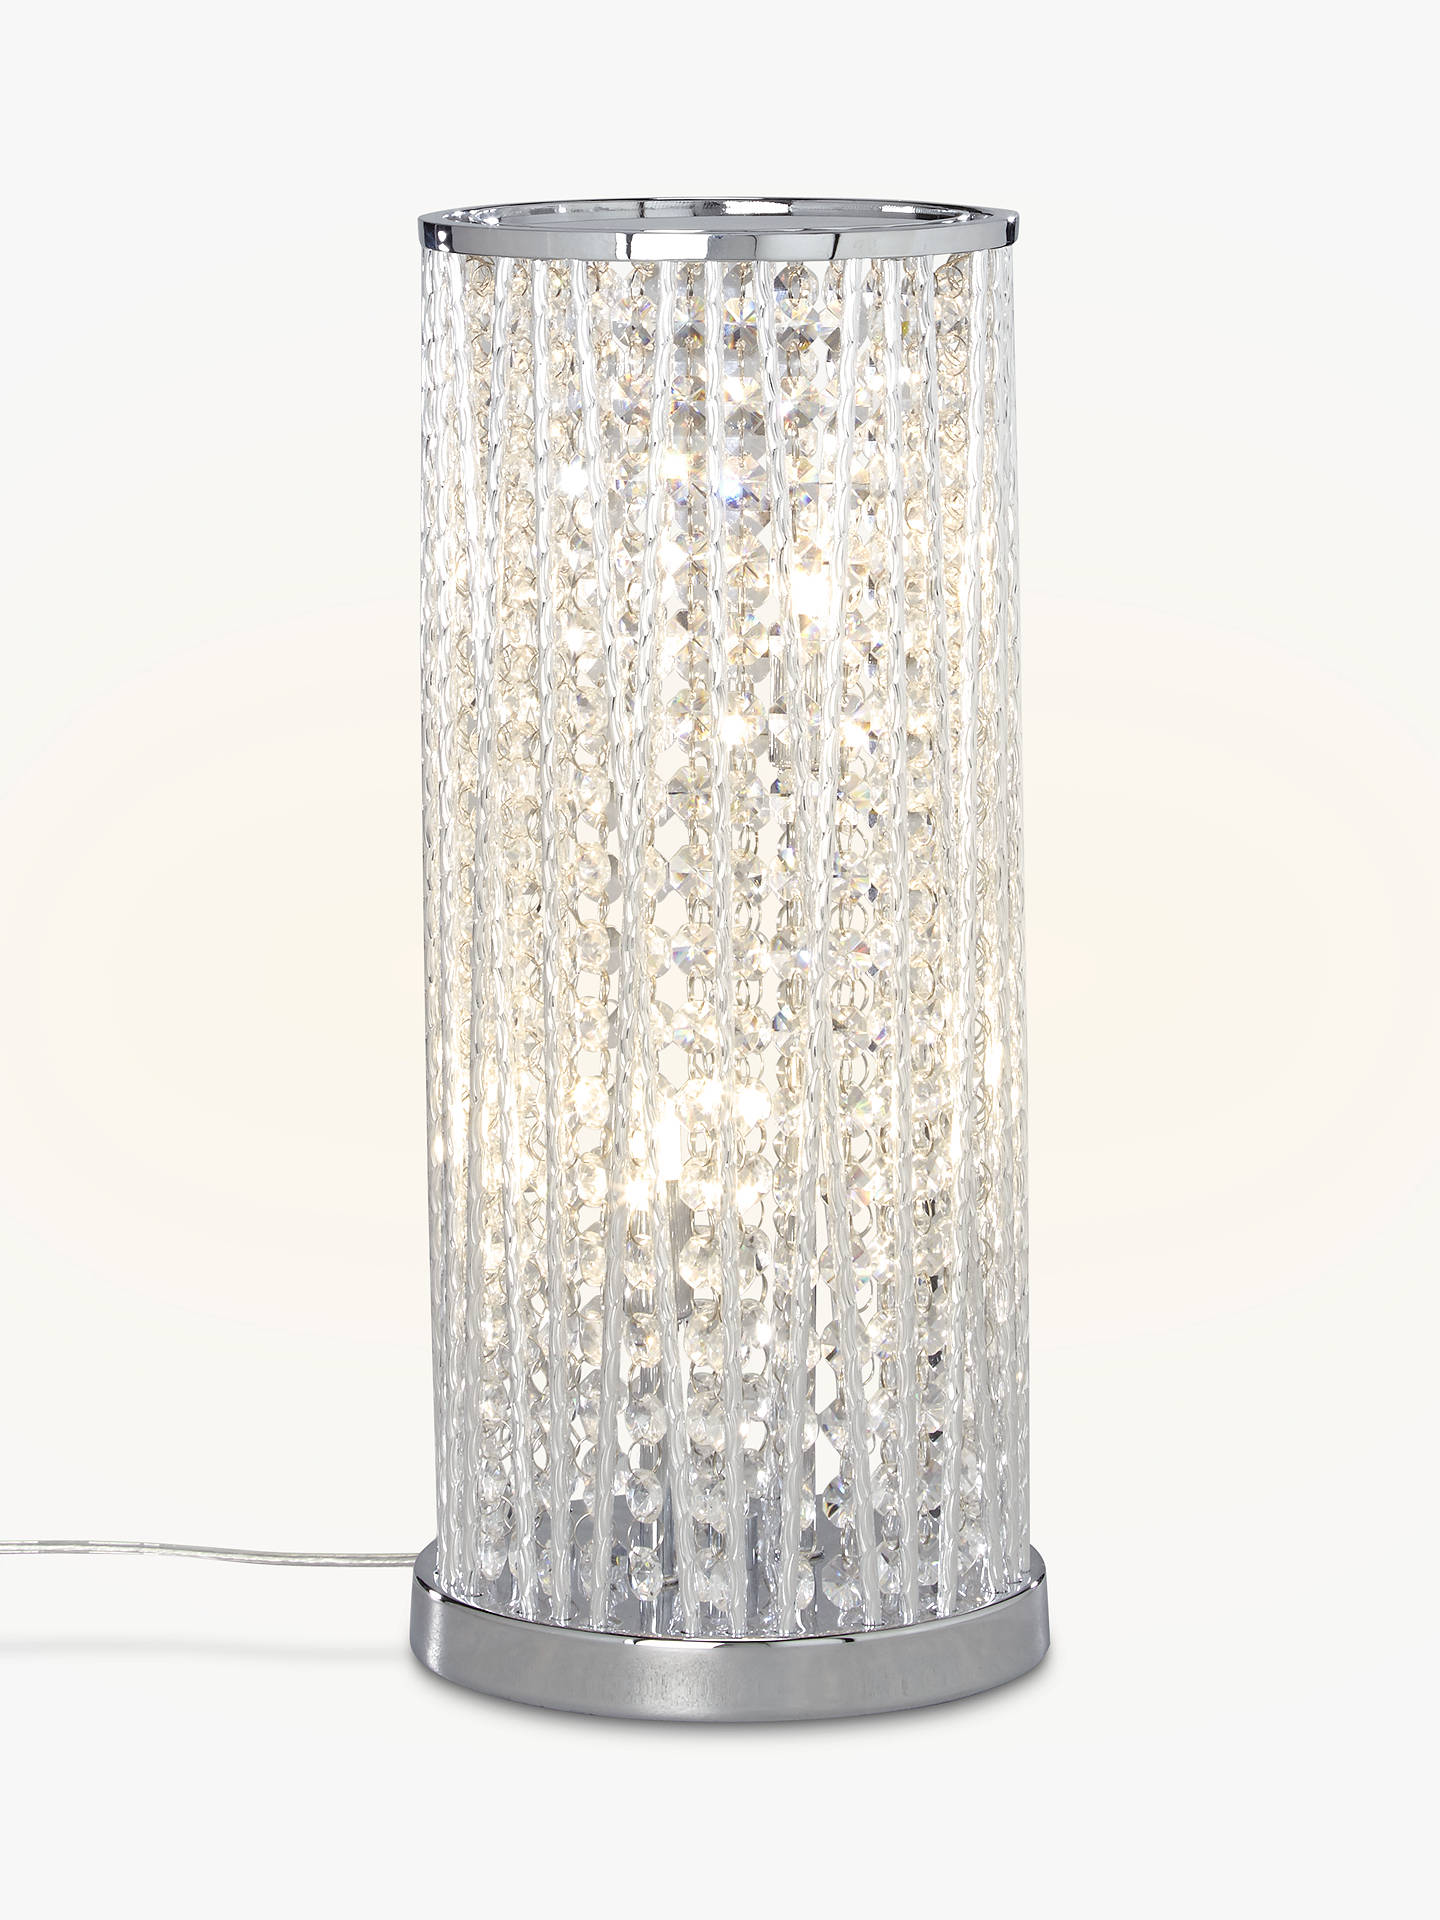 BuyJohn Lewis & Partners Emilia Large Table Lamp, Clear Online at johnlewis.com